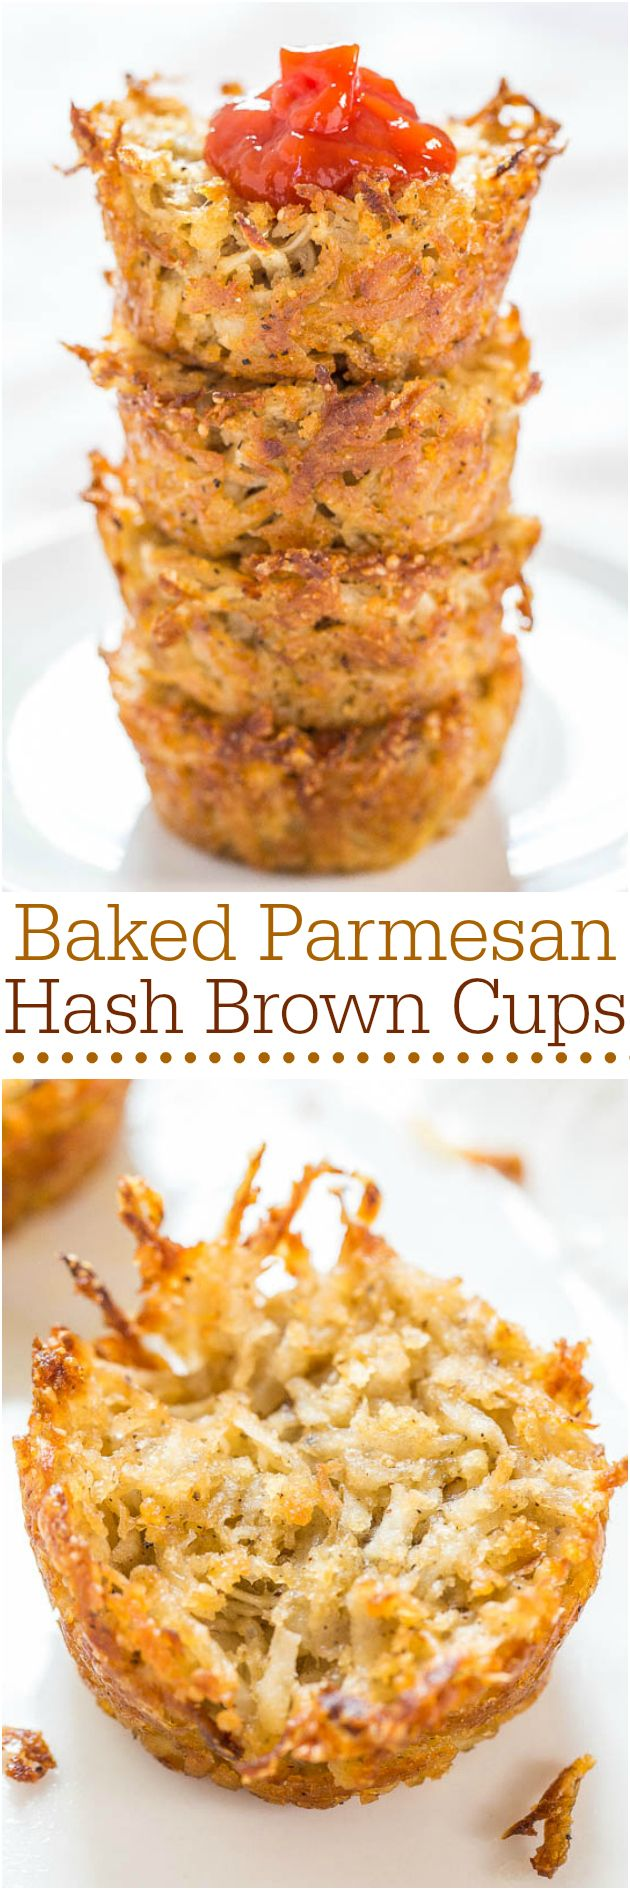 Baked Parmesan Hash Brown Cups ~ Easiest hash browns ever! No stovetop flipping! A great side dish, fun party food, or game day snack!!